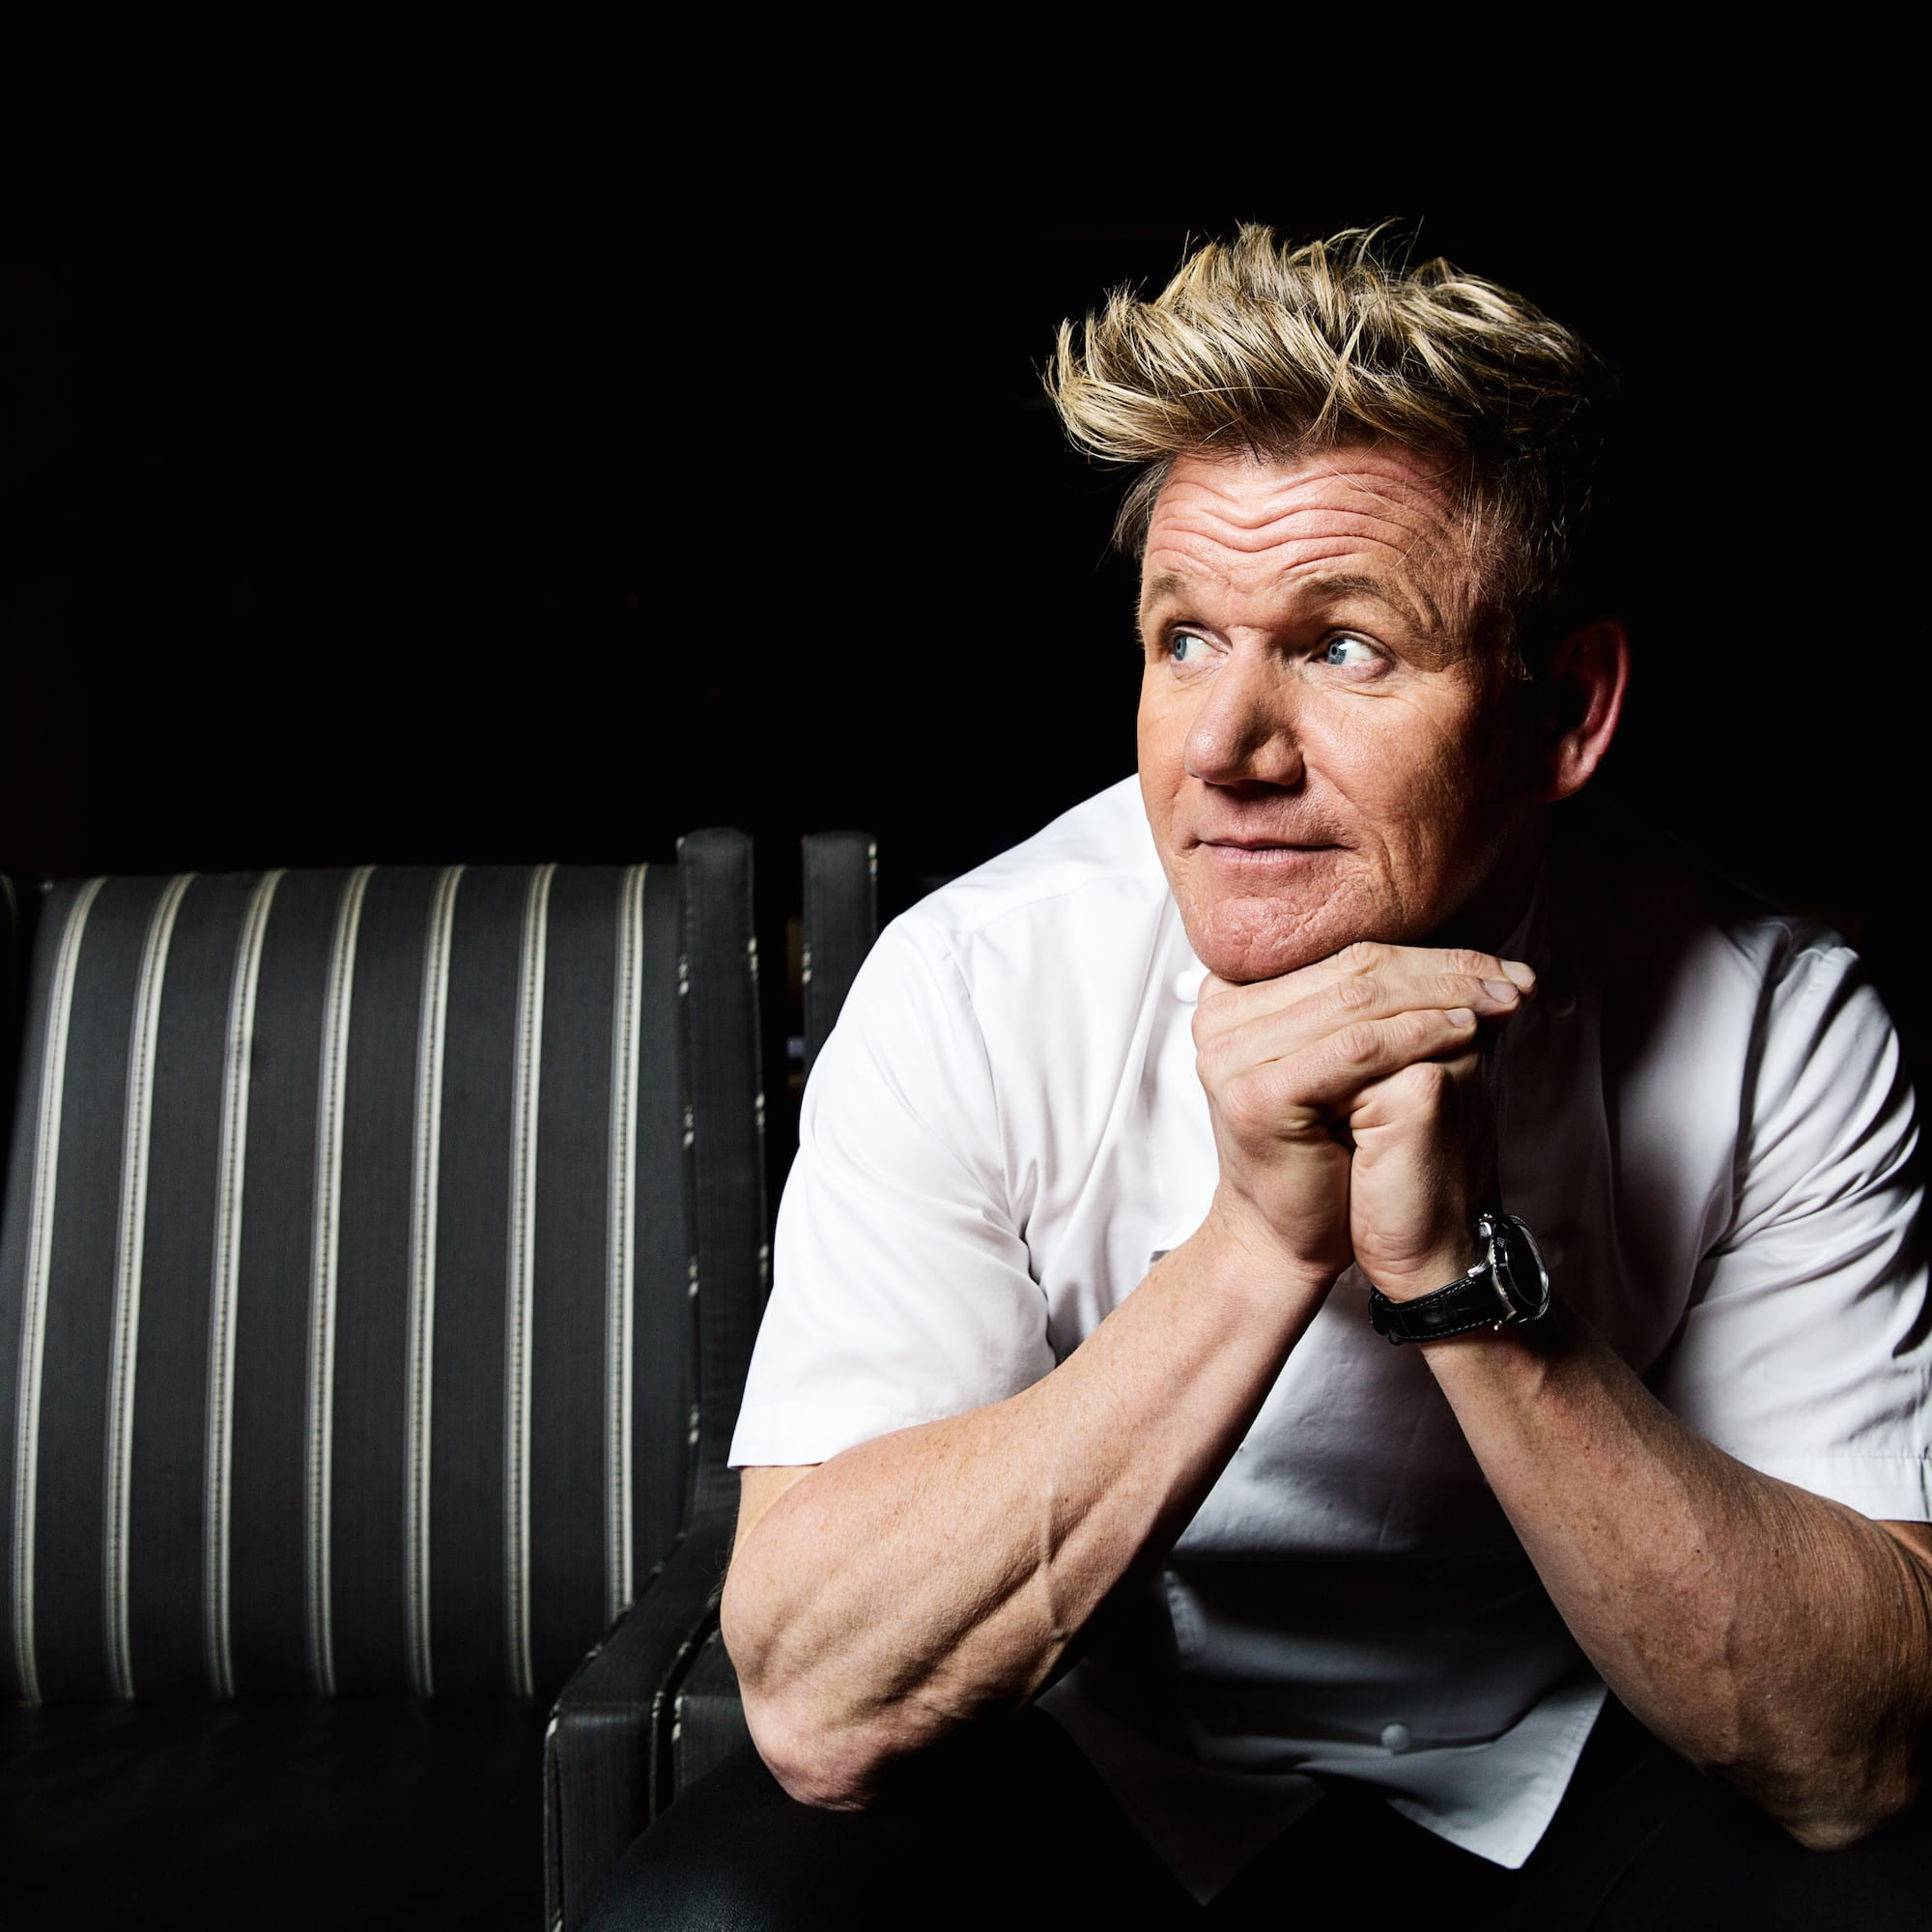 Gordon Ramsay for mobile